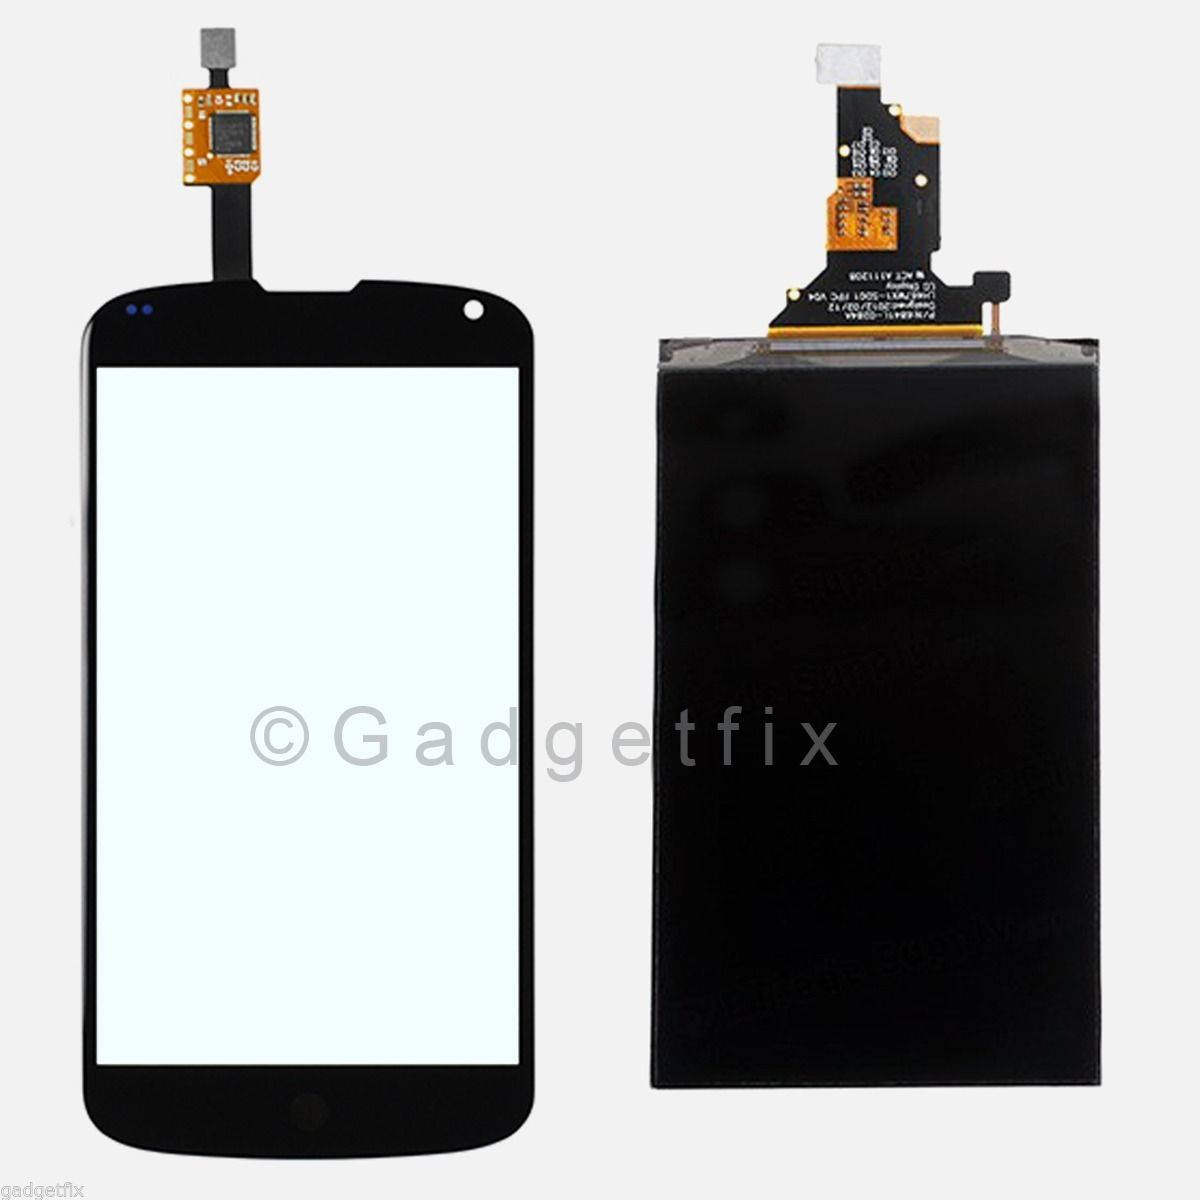 LG E960 Google Nexus 4 Touch Screen Digitizer + LCD Screen Display Assembly